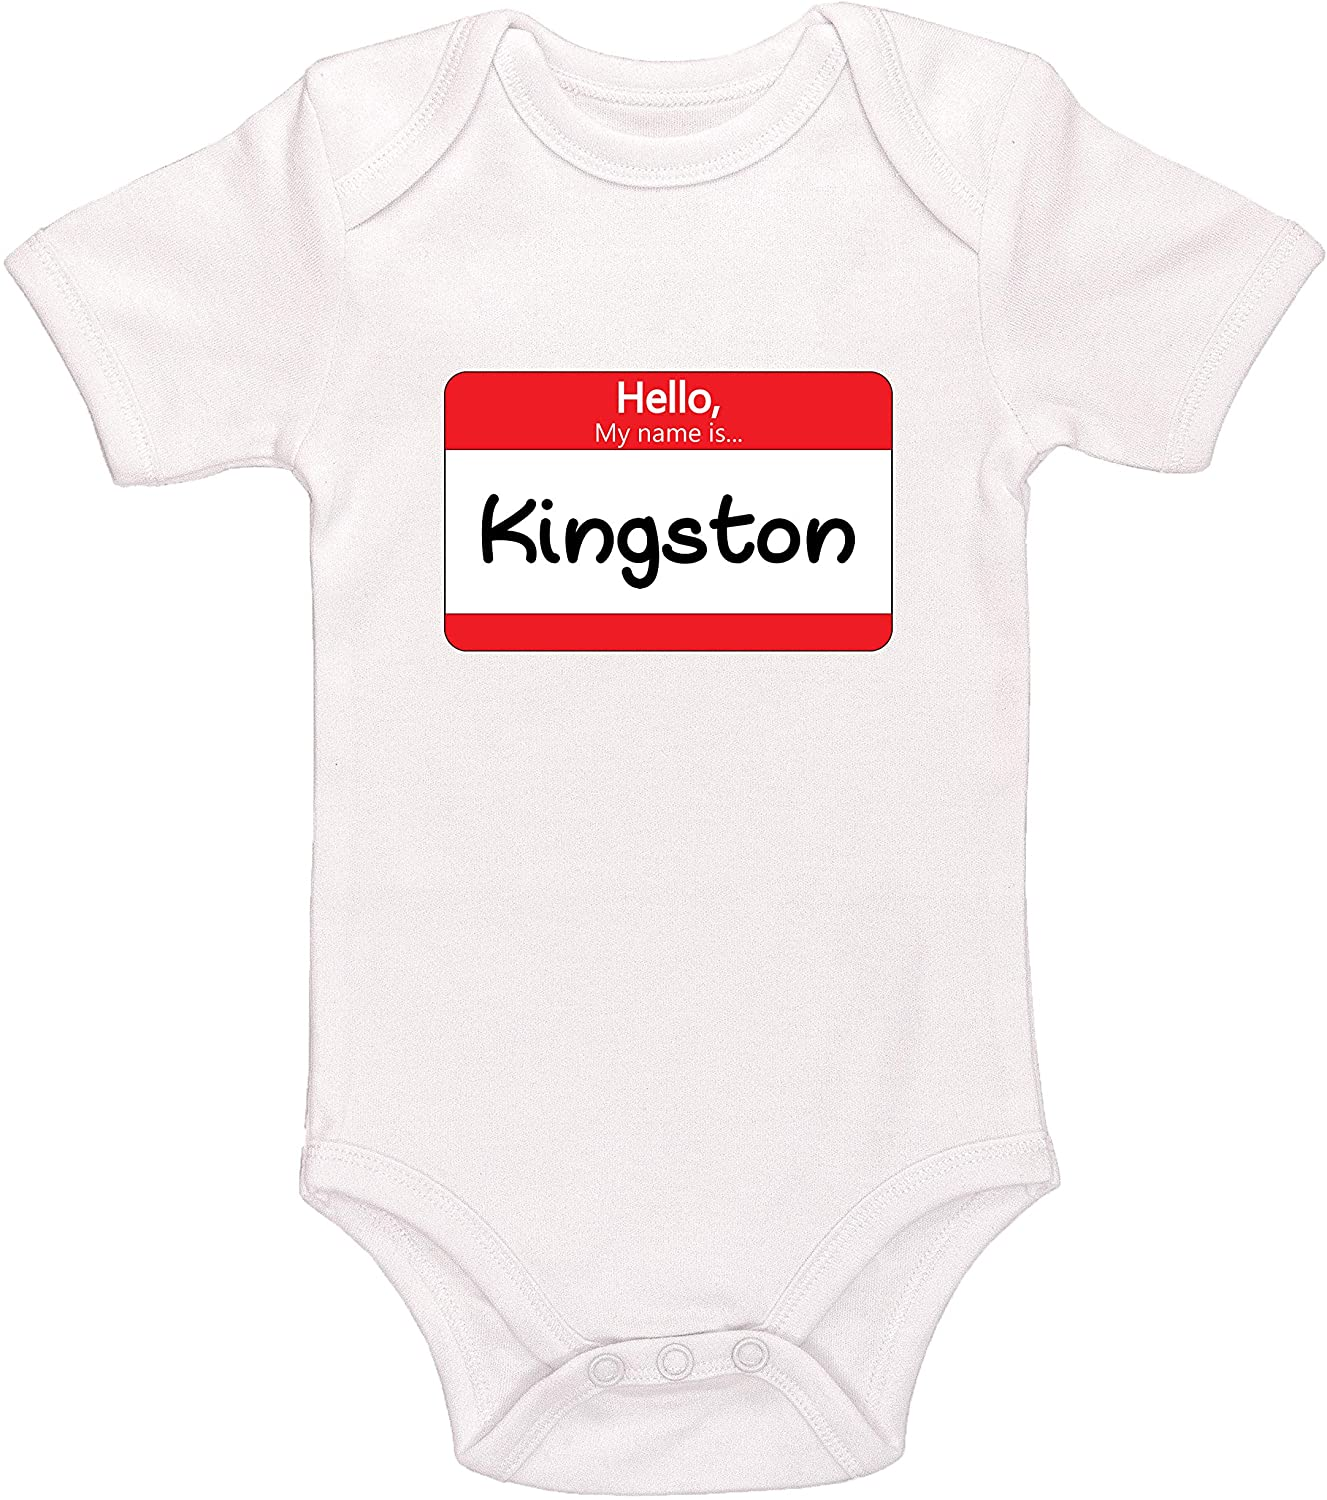 Kinacle Hello My Name is Kingston Personalized Baby Bodysuit